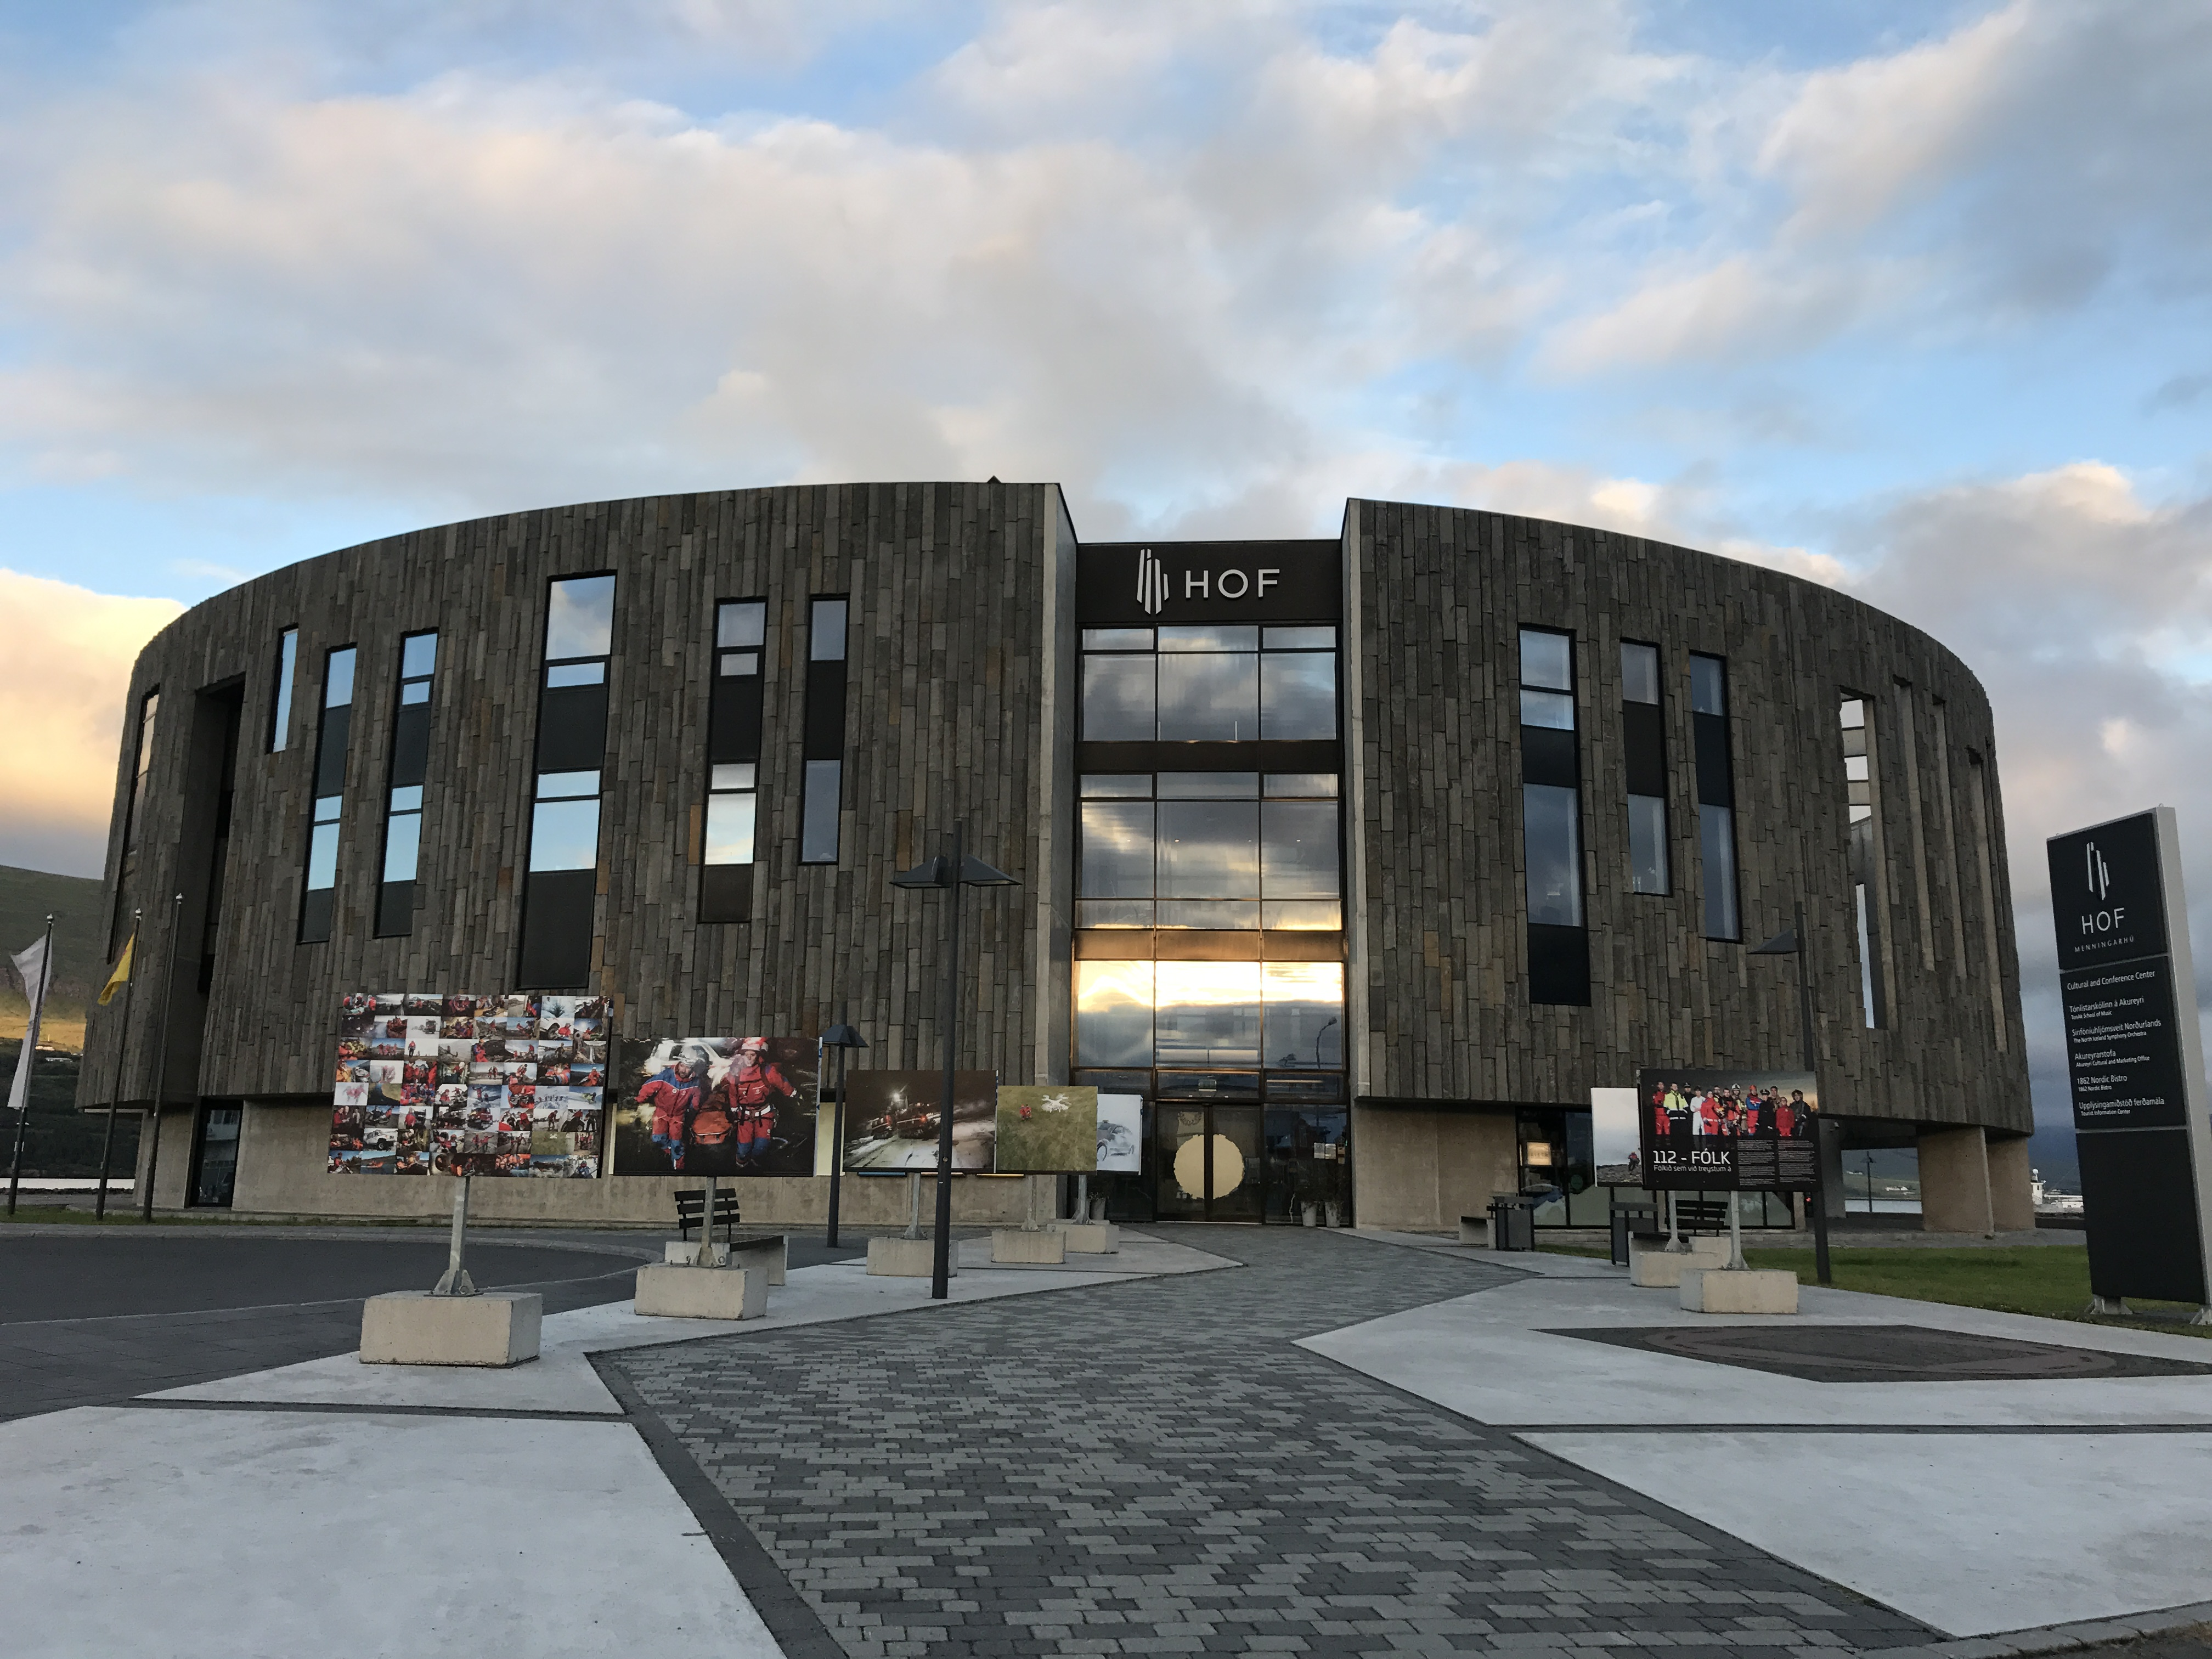 [Guide] Visit Akureyri the capital of North Iceland